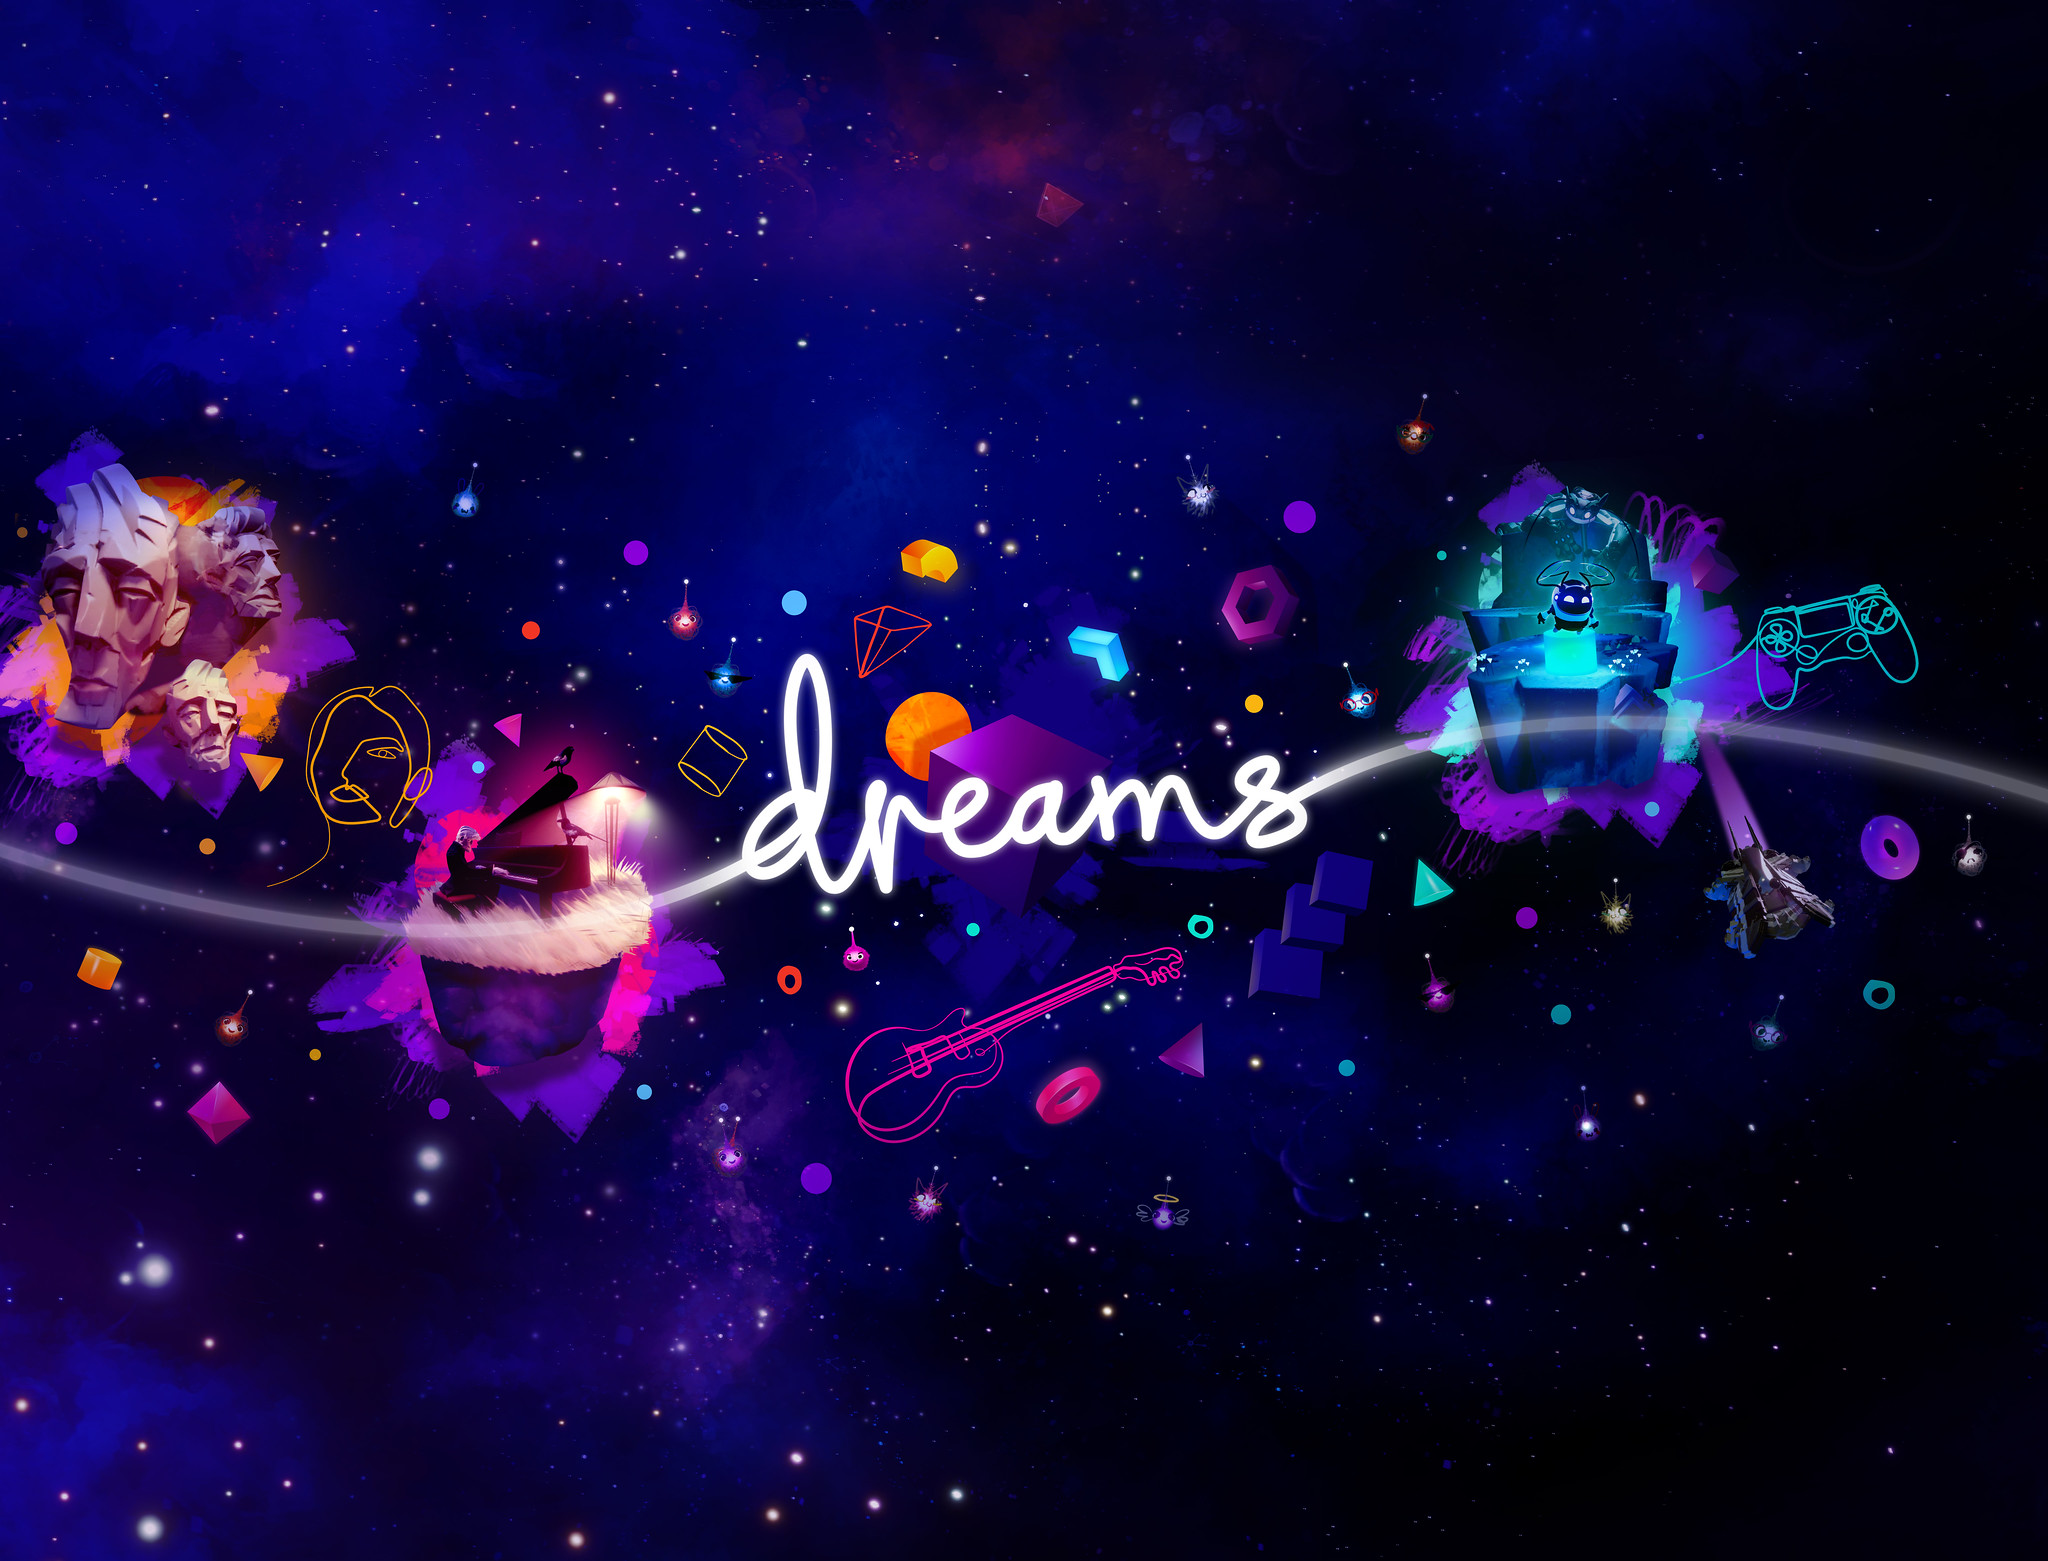 Dreams on PS4